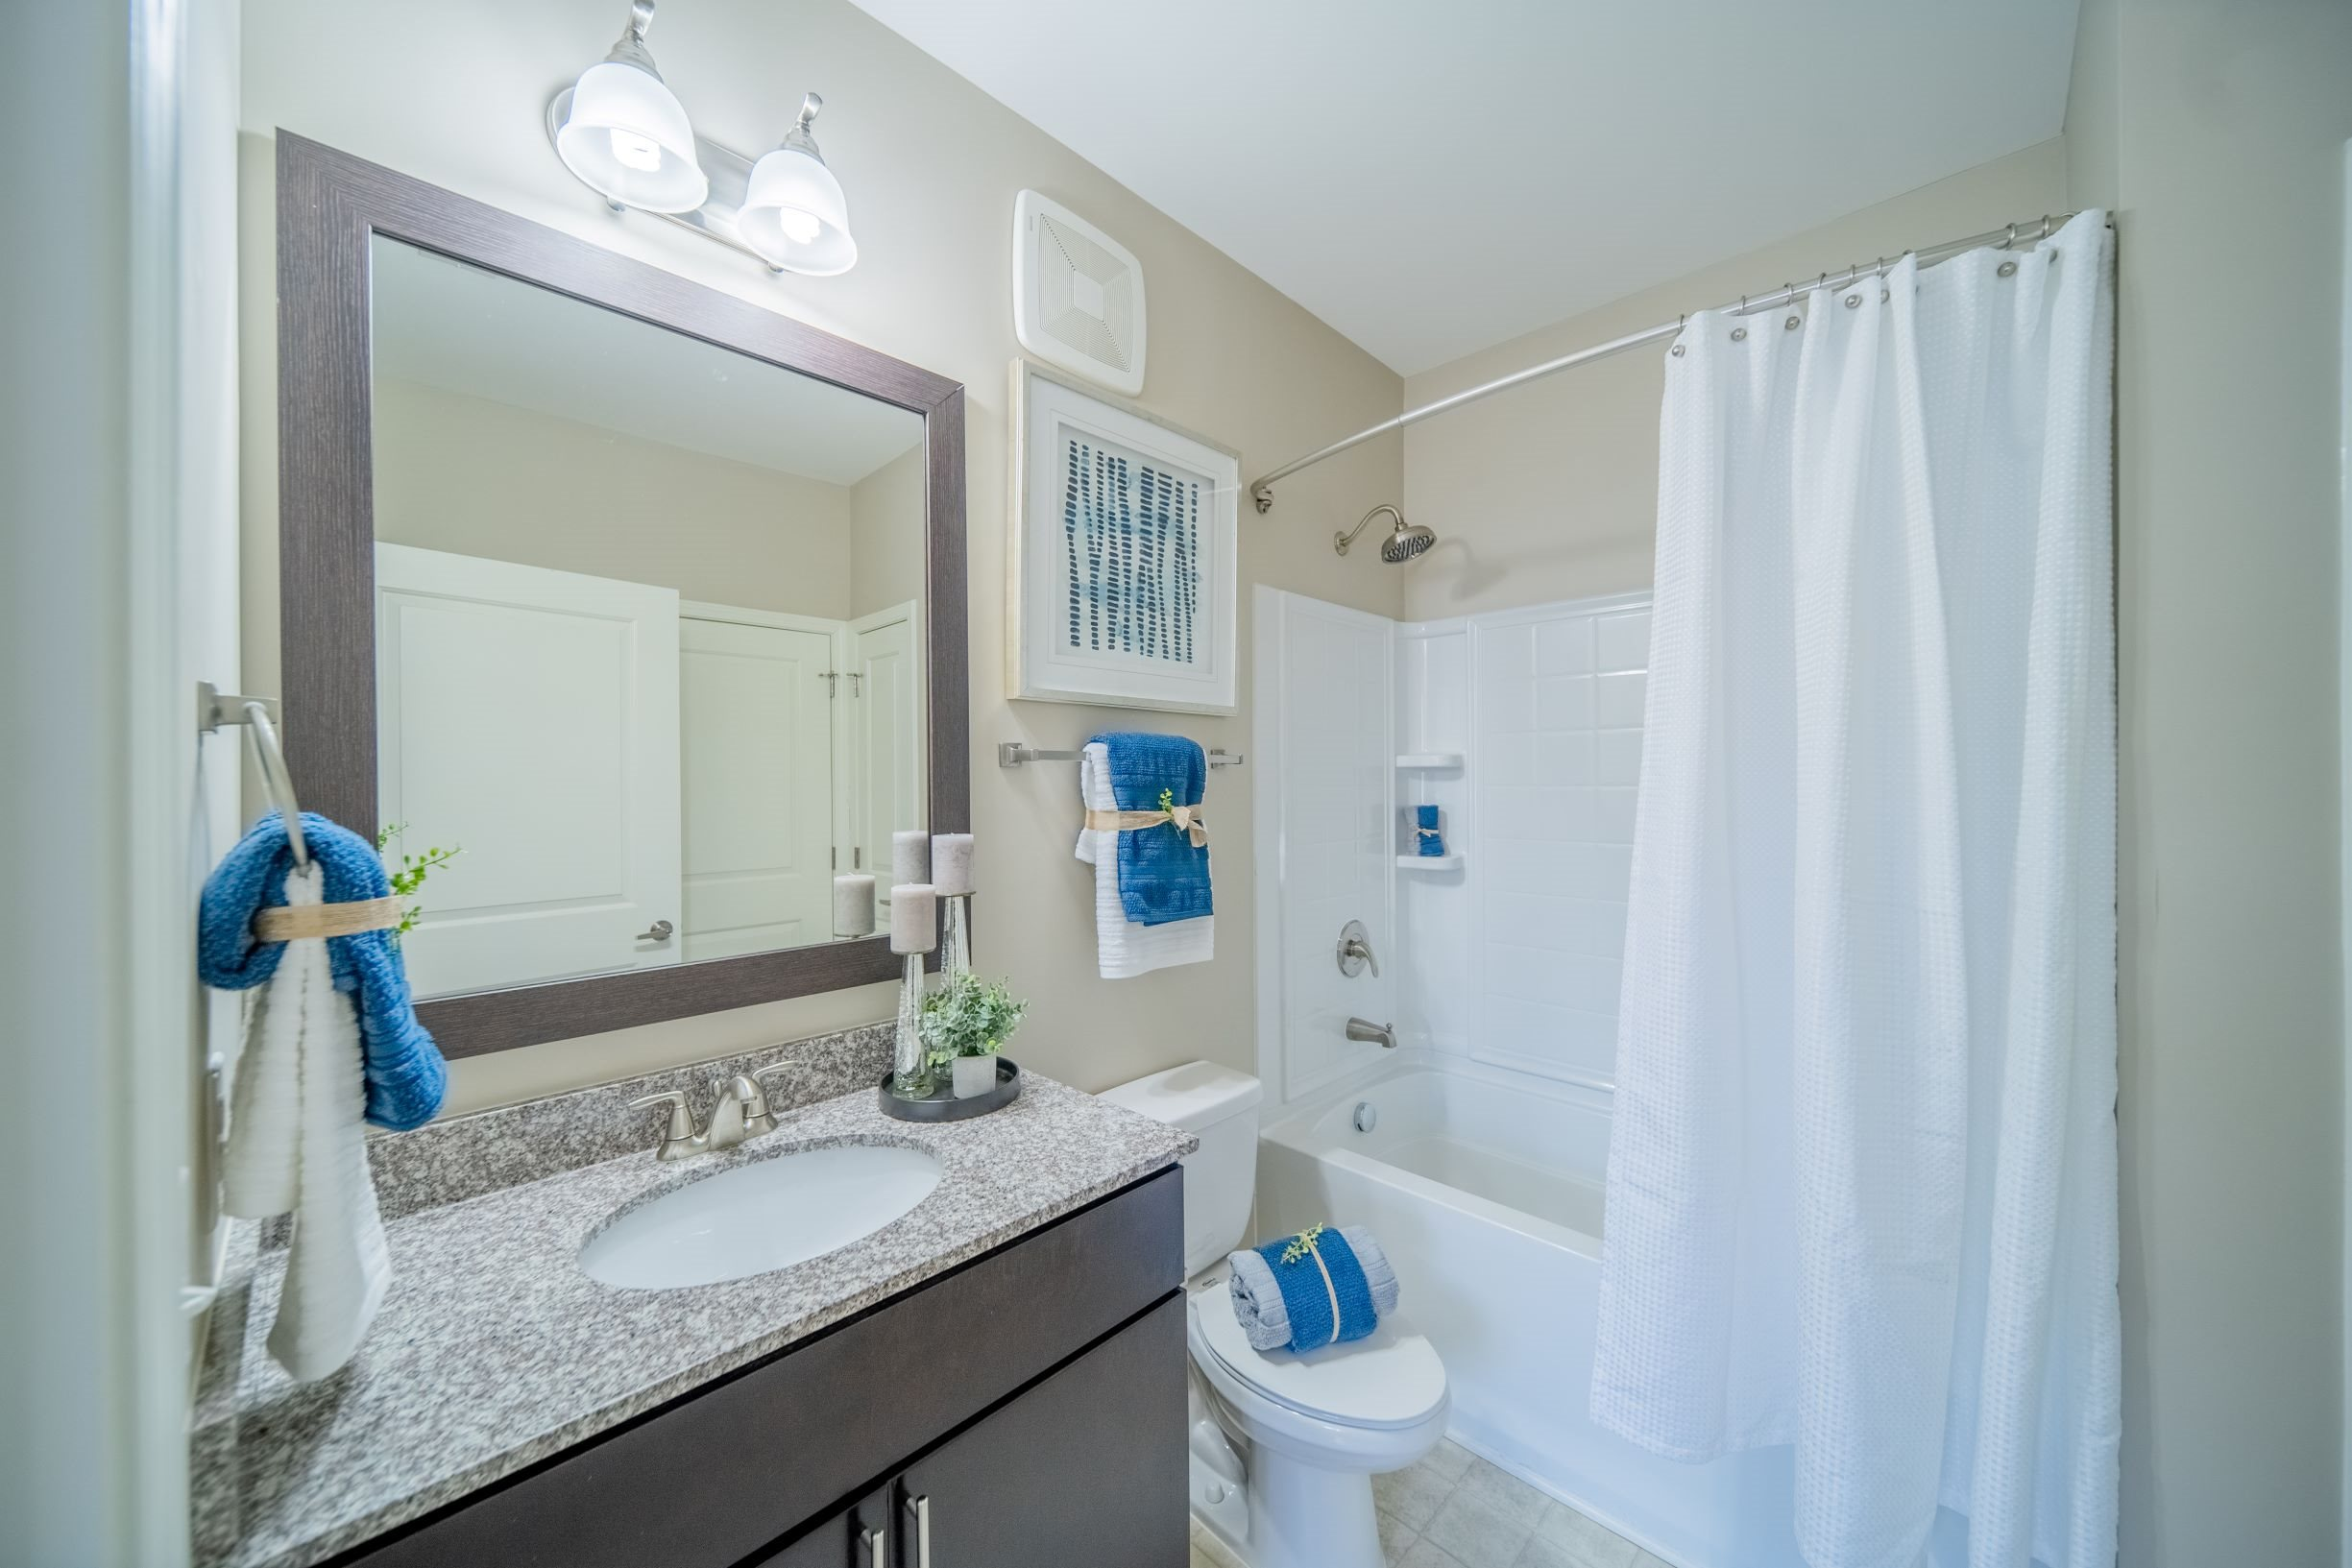 Spacious bathroom with granite countertops, framed mirror, and soaking tub at Piedmont Place in Greensboro, NC